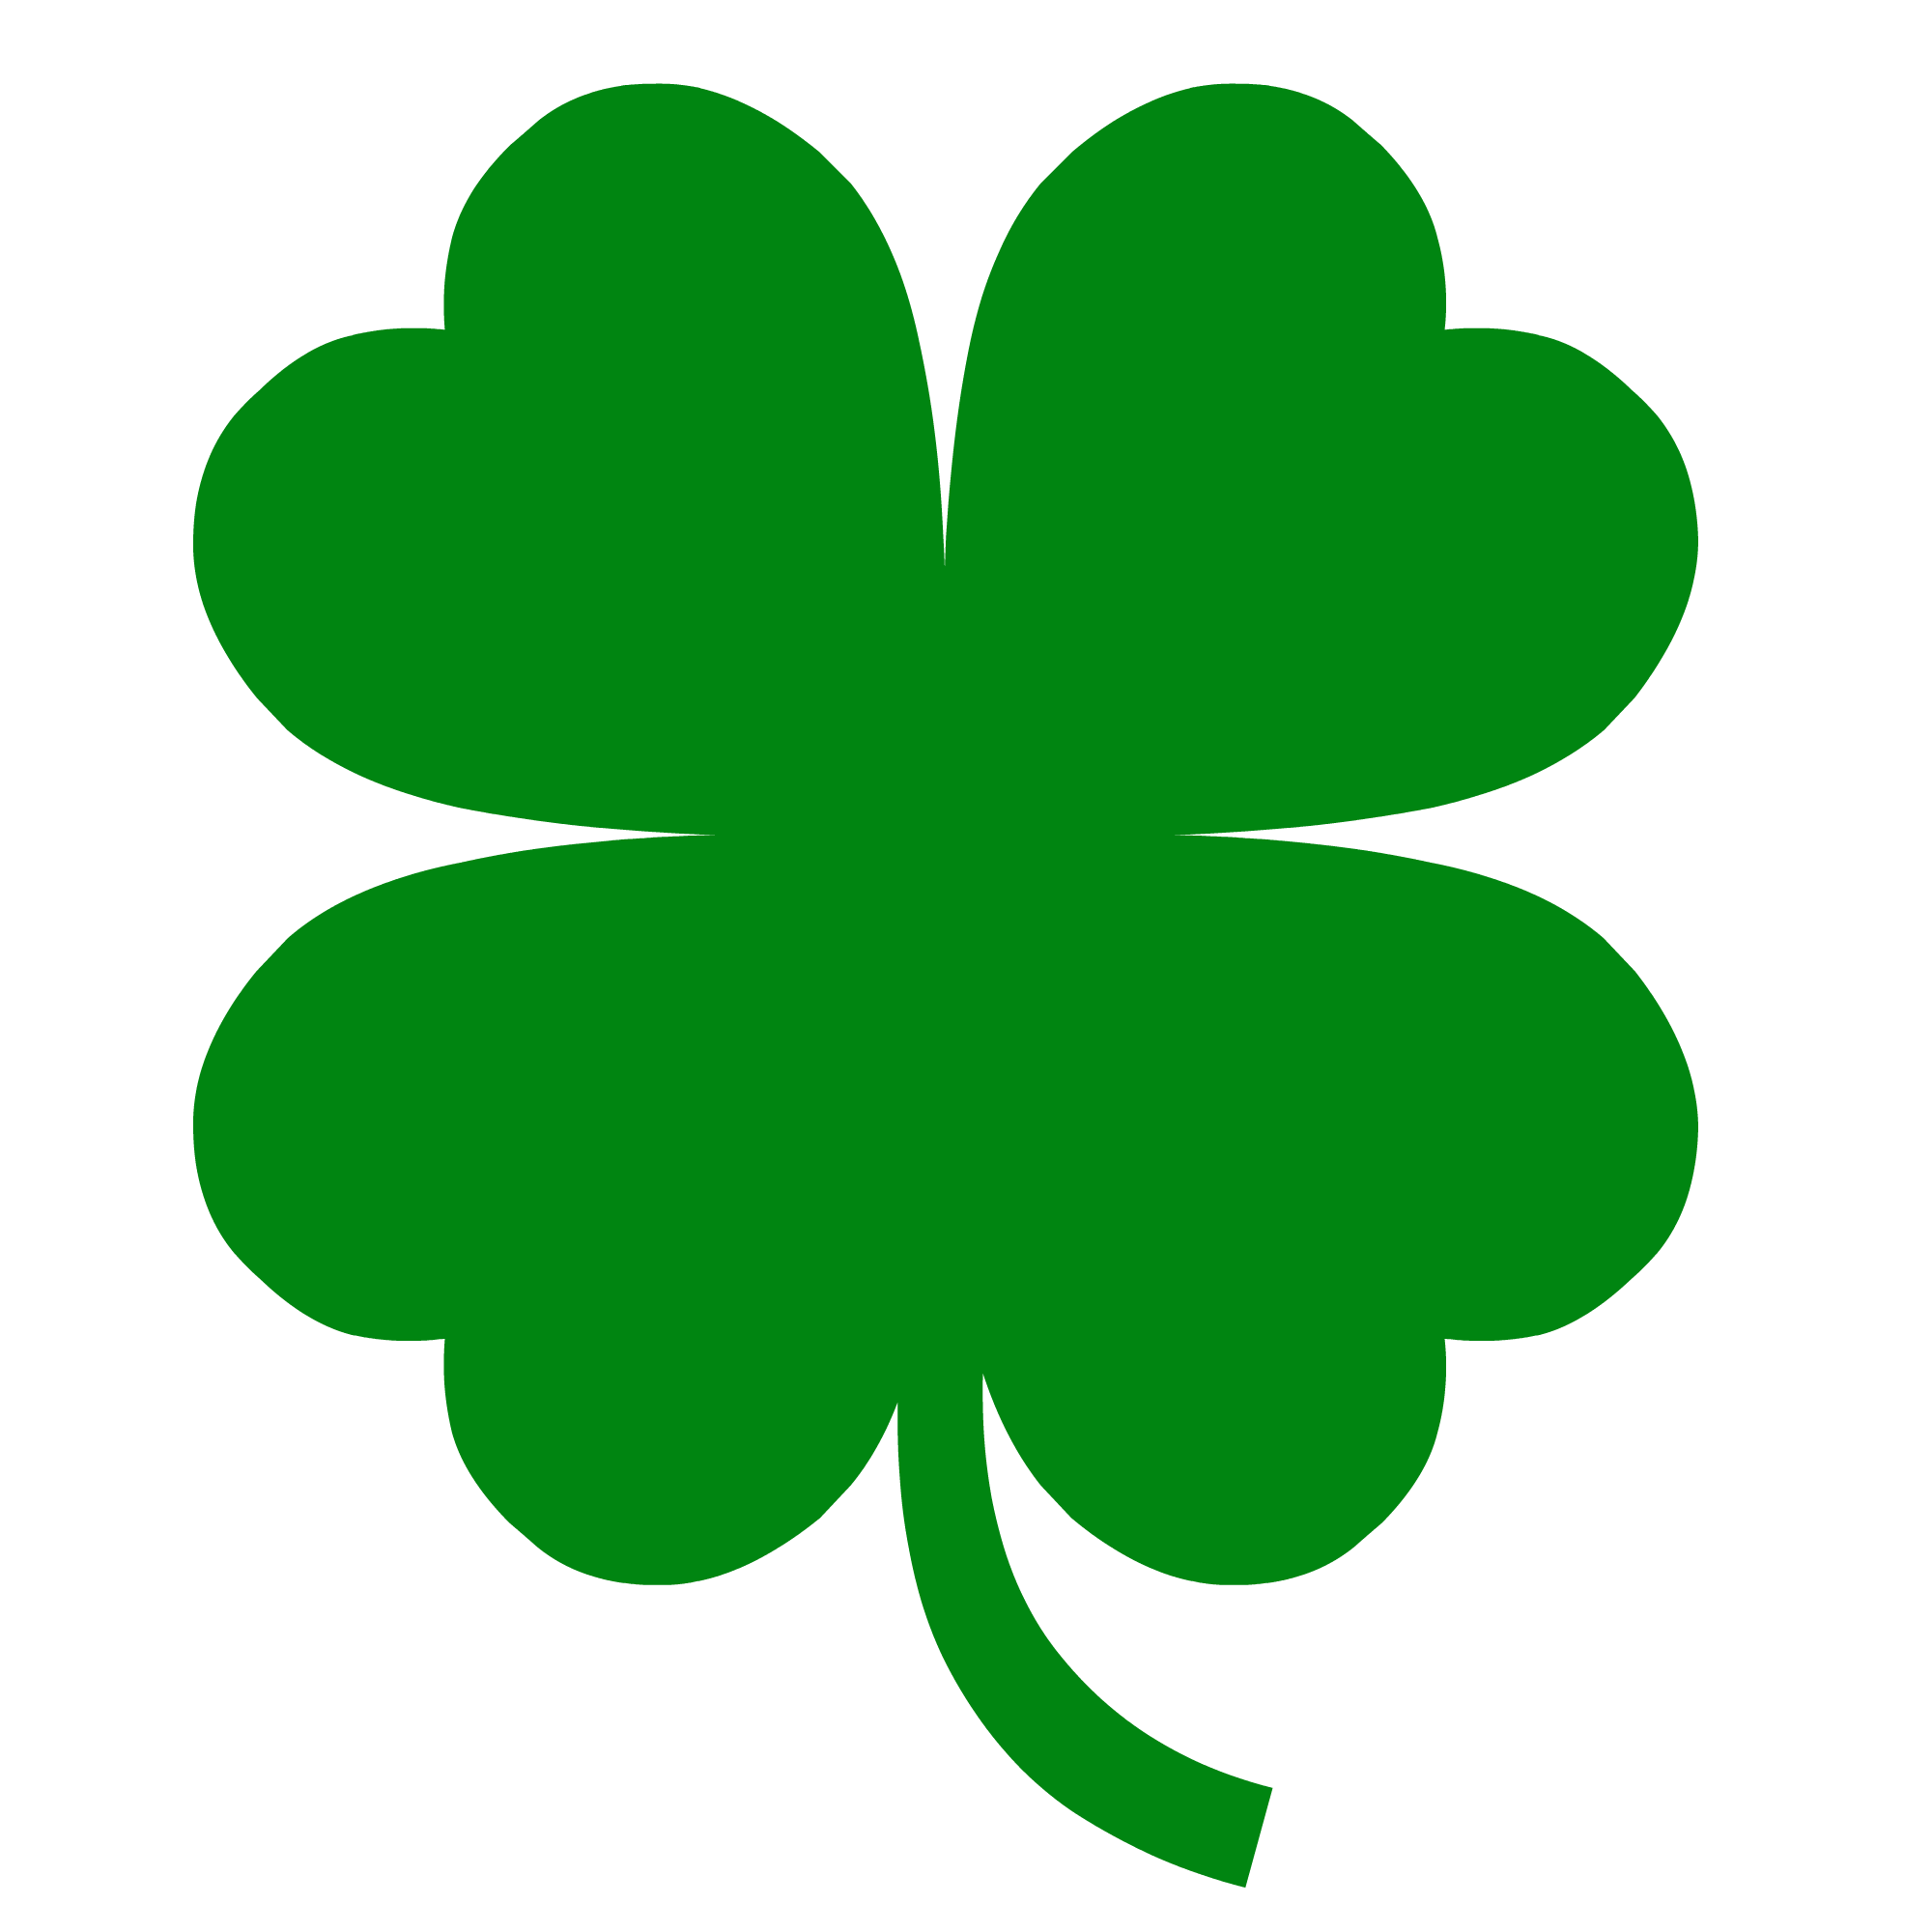 four-leaf-clover-template-cutout-printout